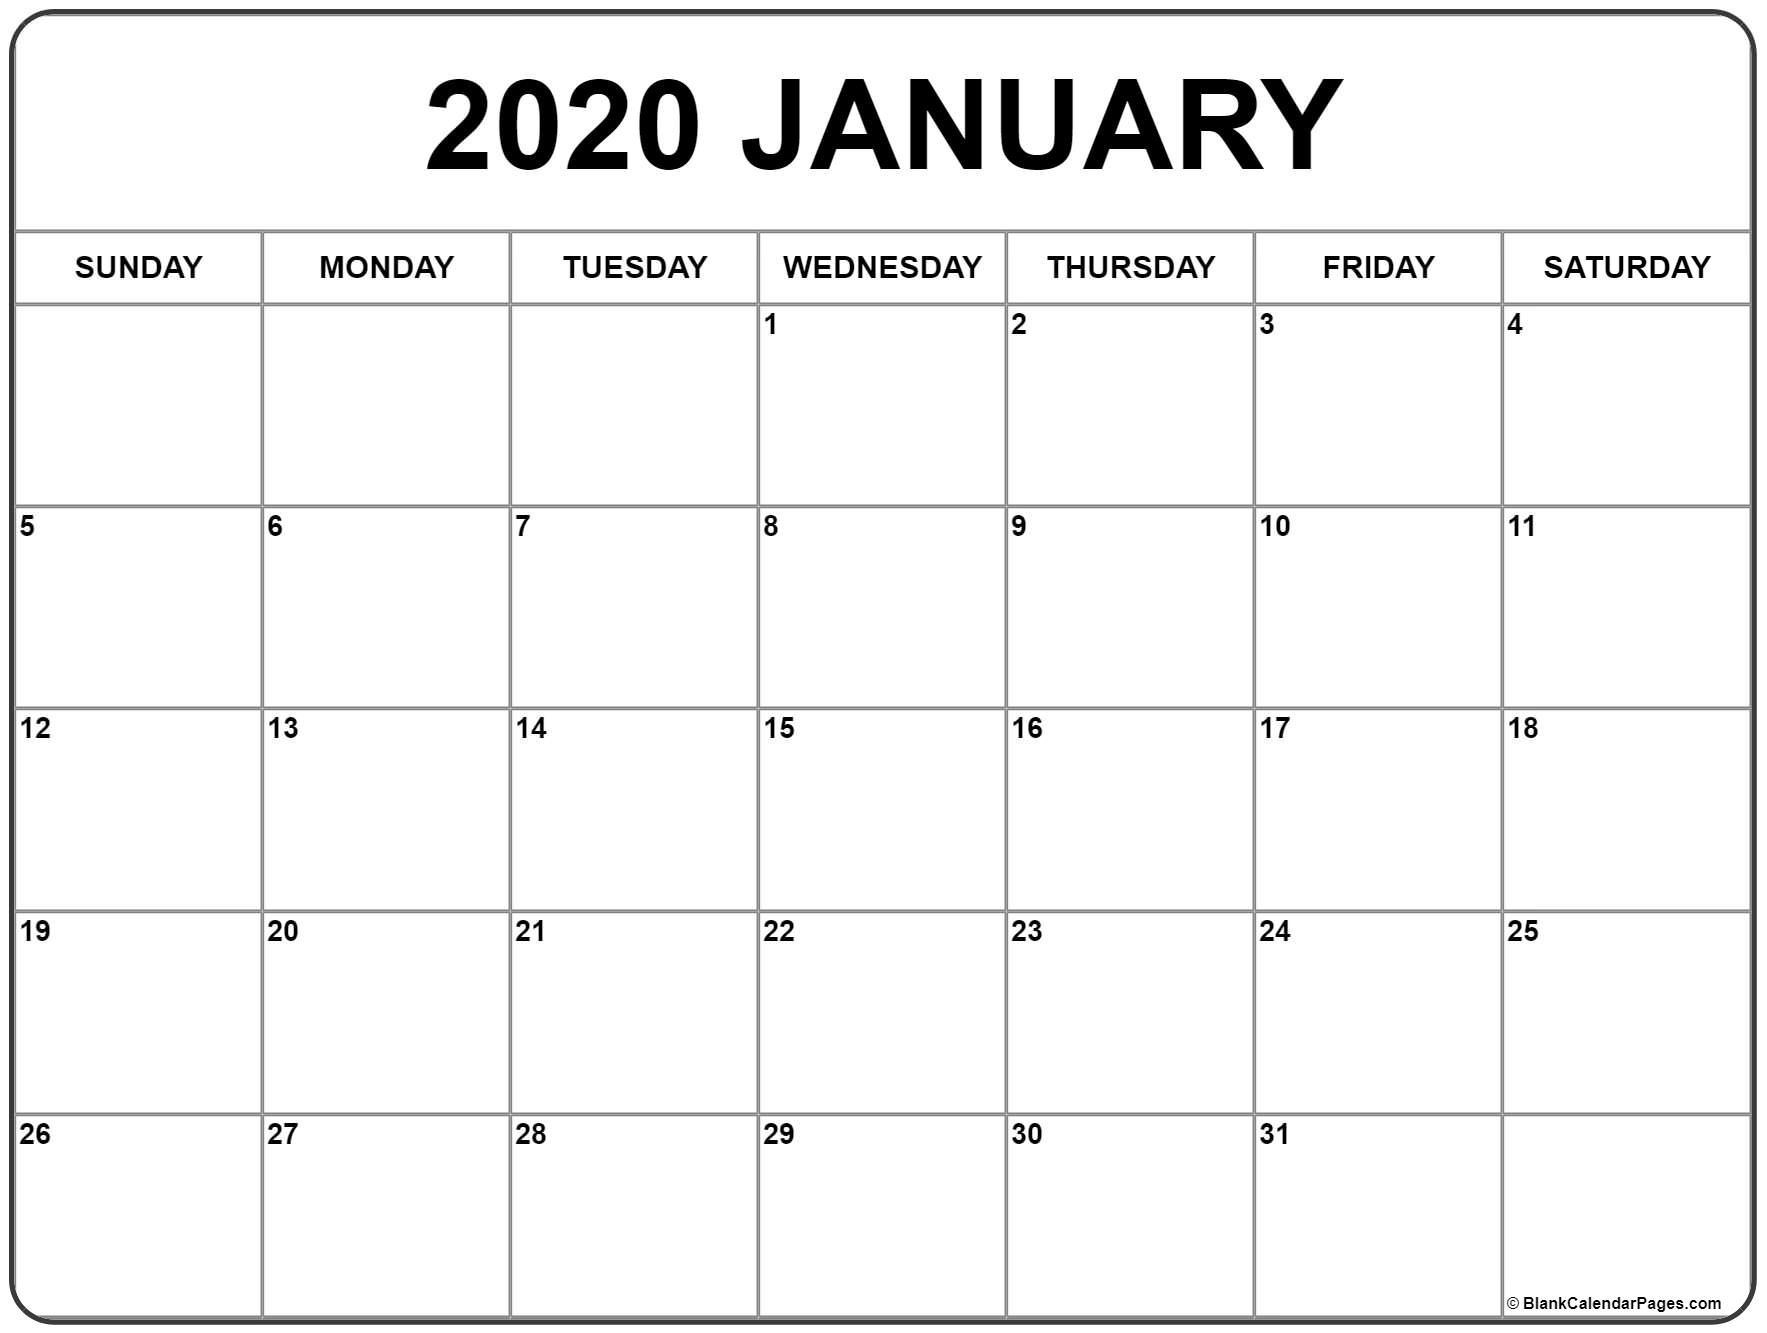 January 2020 Calendar | Free Printable Monthly Calendars-January Through June 2020 Calendar